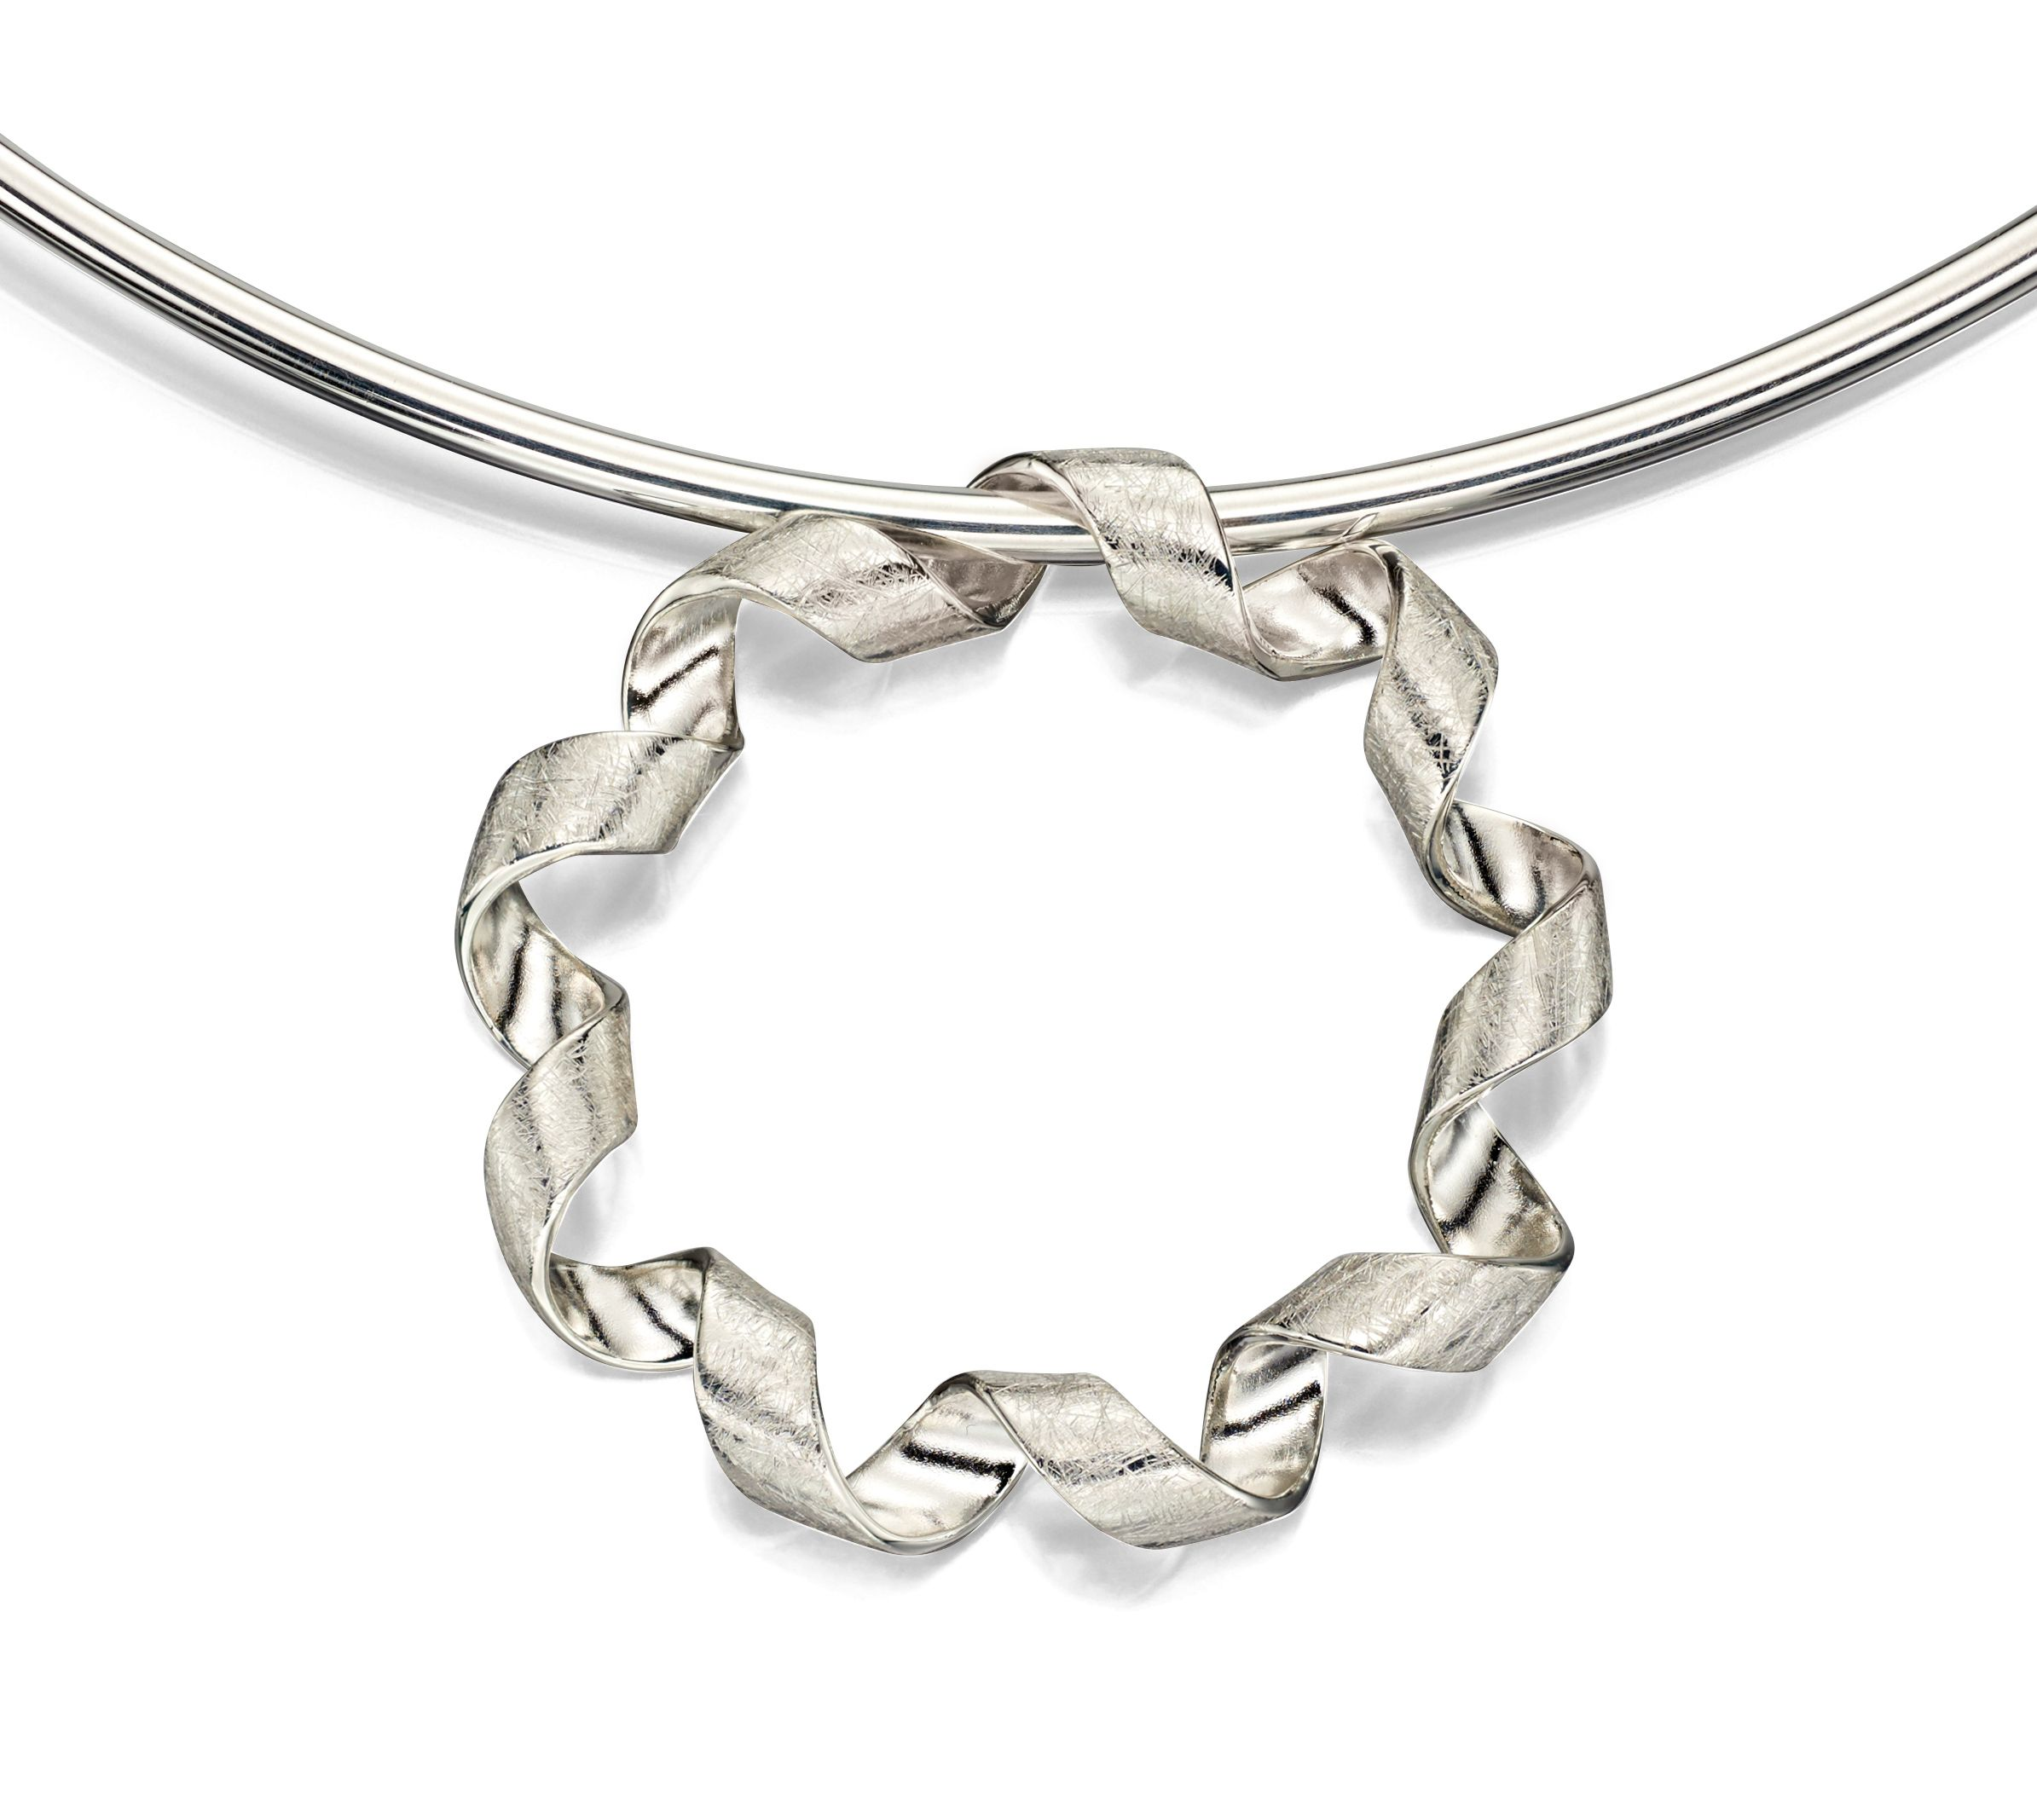 Elements Silver Womens 925 Sterling Silver Scratch Finish Round Twist Ribbon Pendant Necklace of Length 46cm